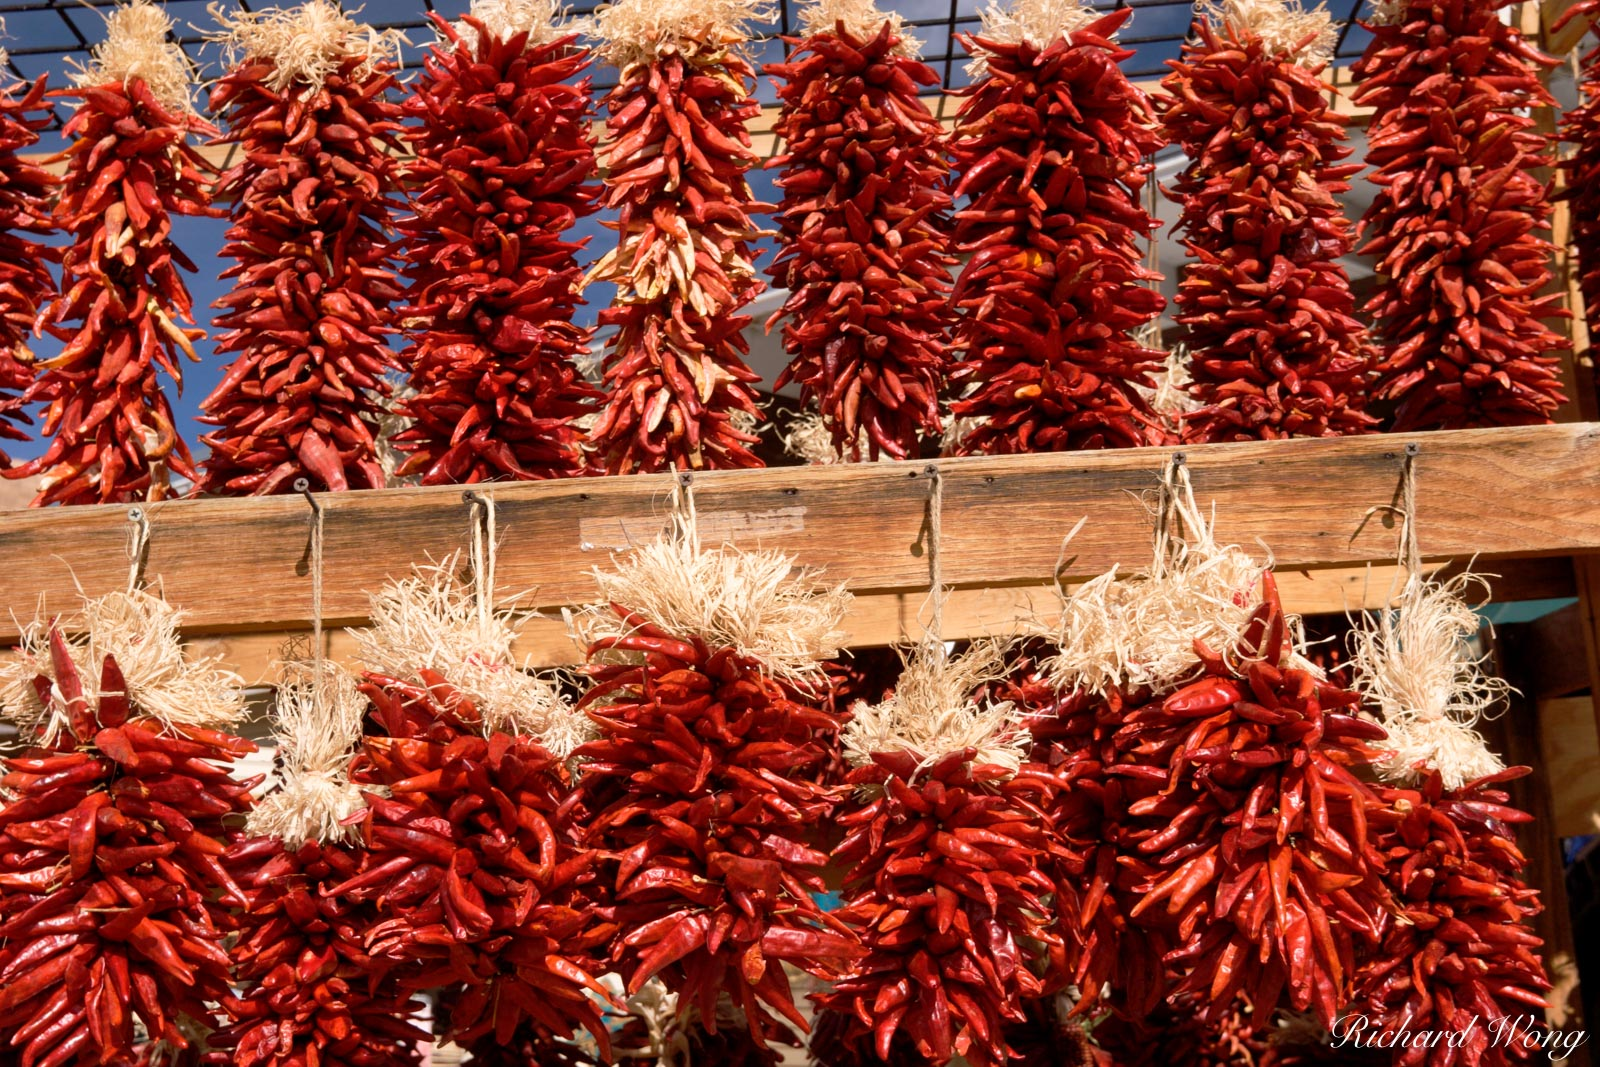 Red Chiles for Sale on Vendor Stall at the Plaza, Santa Fe, New Mexico